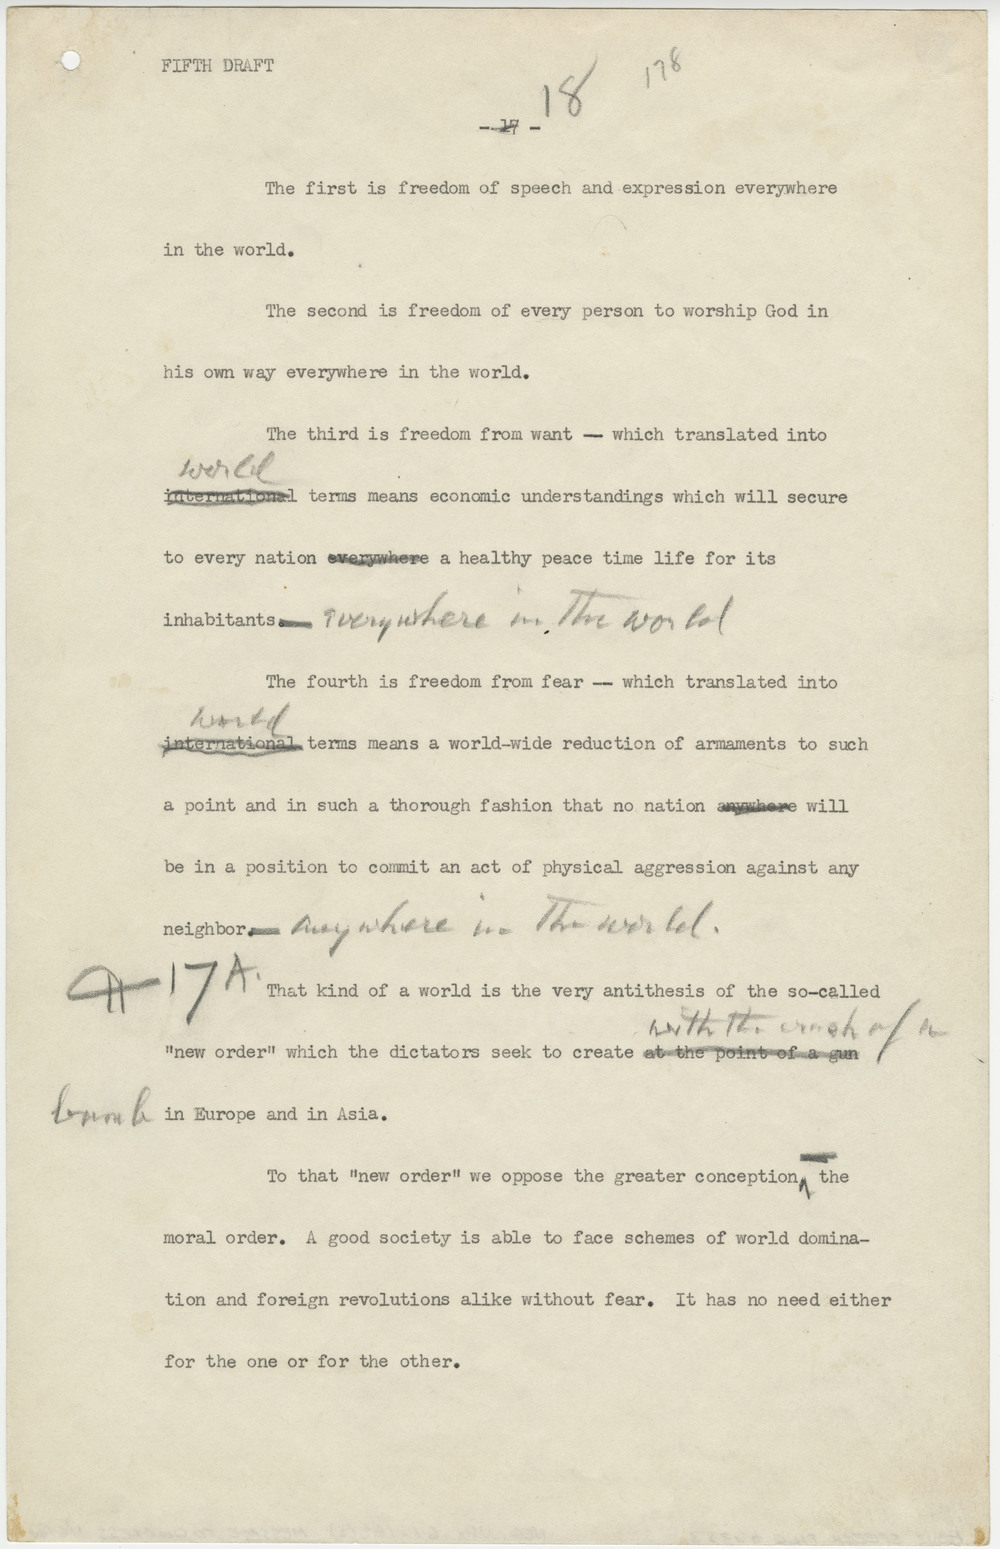 Franklin Roosevelt, Four Freedoms